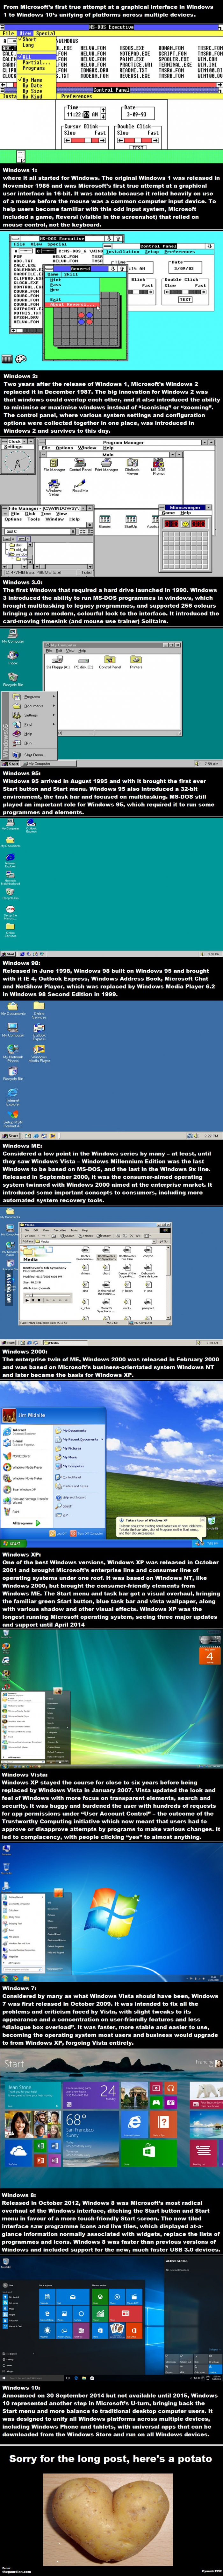 30 Years of Windows Evolution